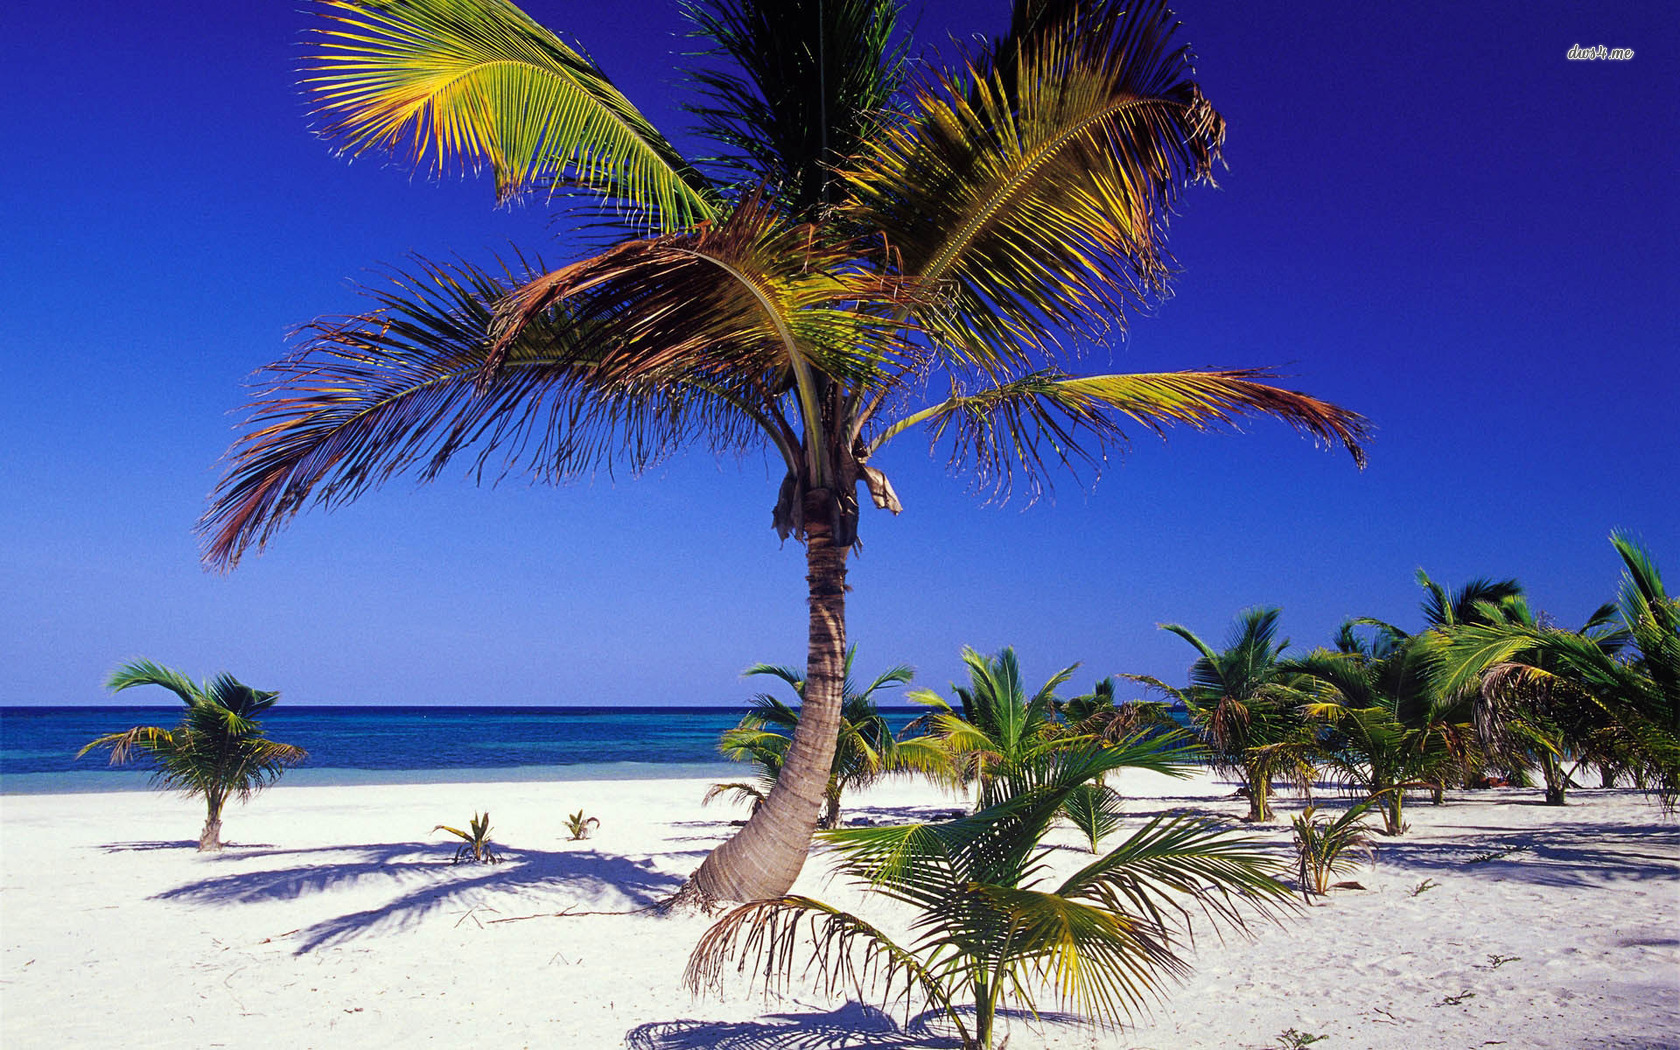 Palm trees in Mexico wallpaper   Beach wallpapers   5076 1680x1050